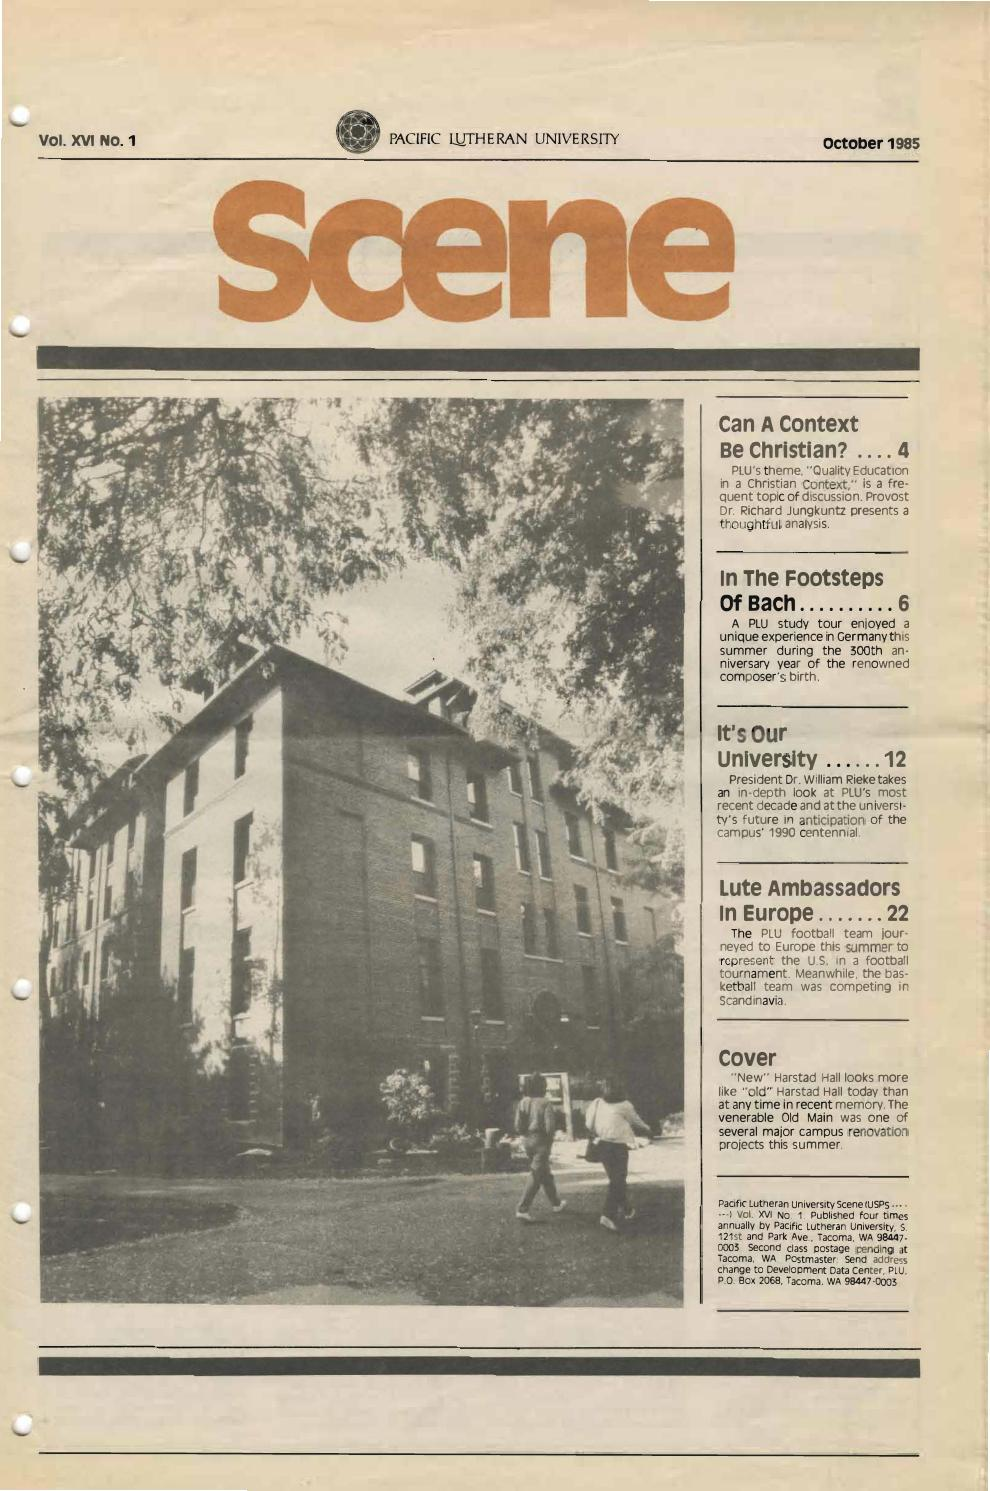 1985 1986 v 16 no 1 4 by Pacific Lutheran University Archives - issuu